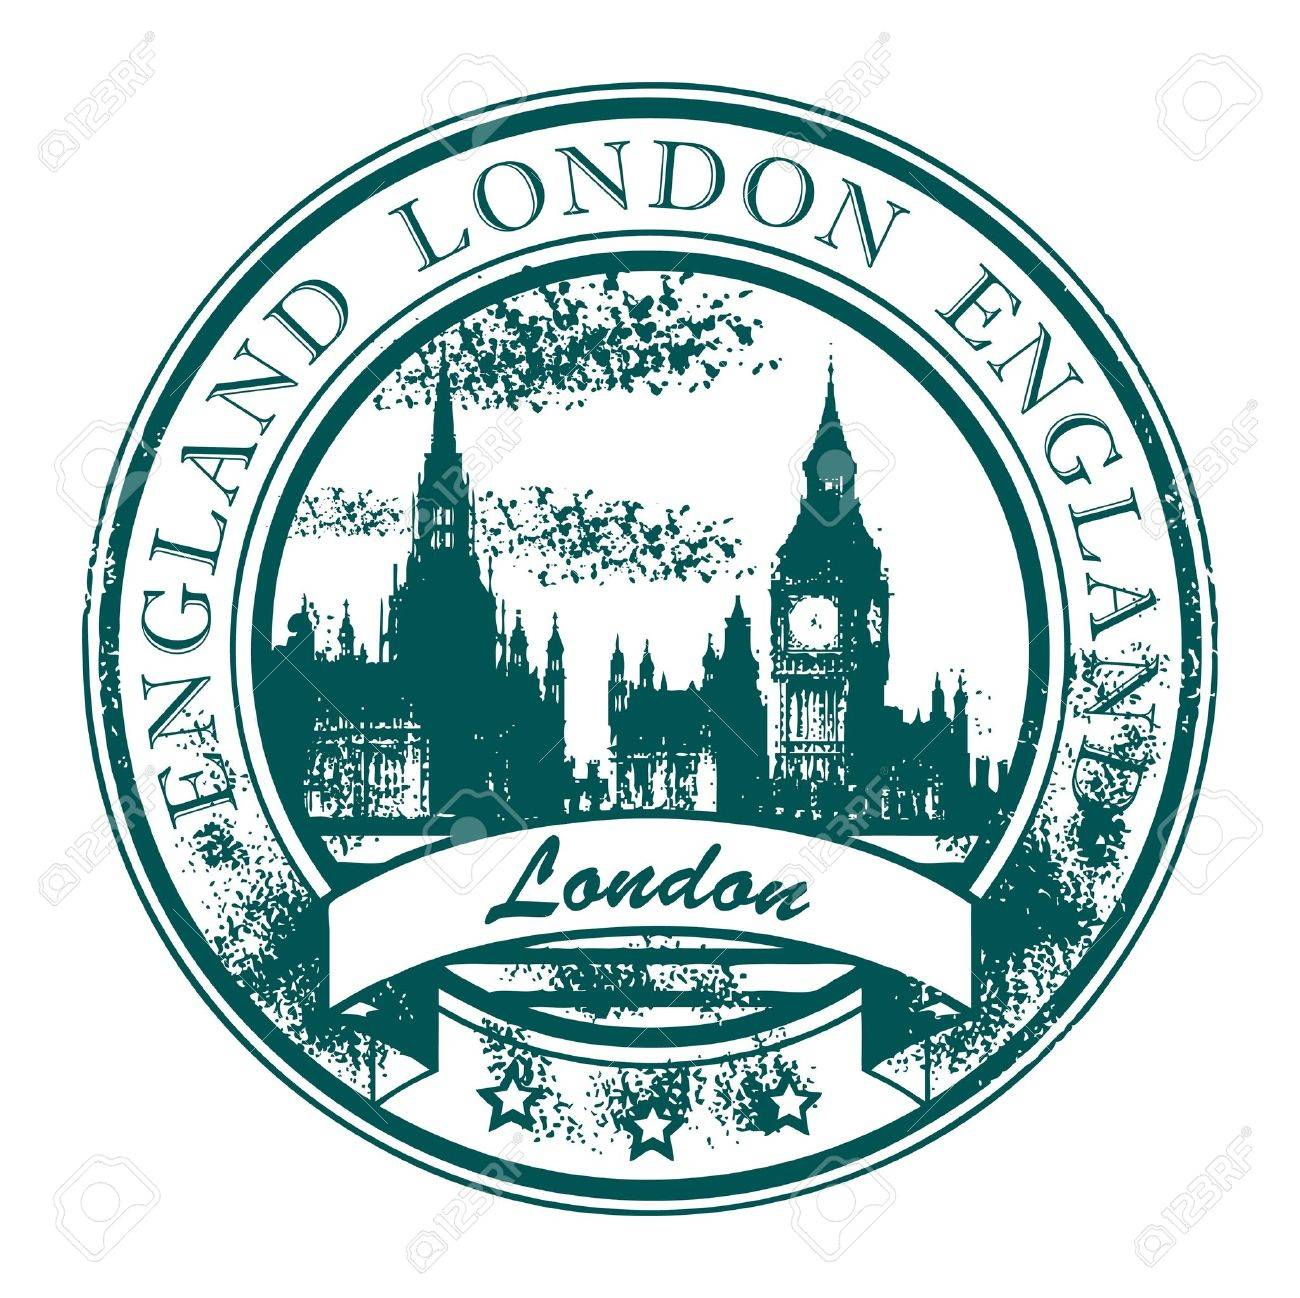 Grunge rubber stamp with London parliament and the word London, England inside Stock Vector - 13872353